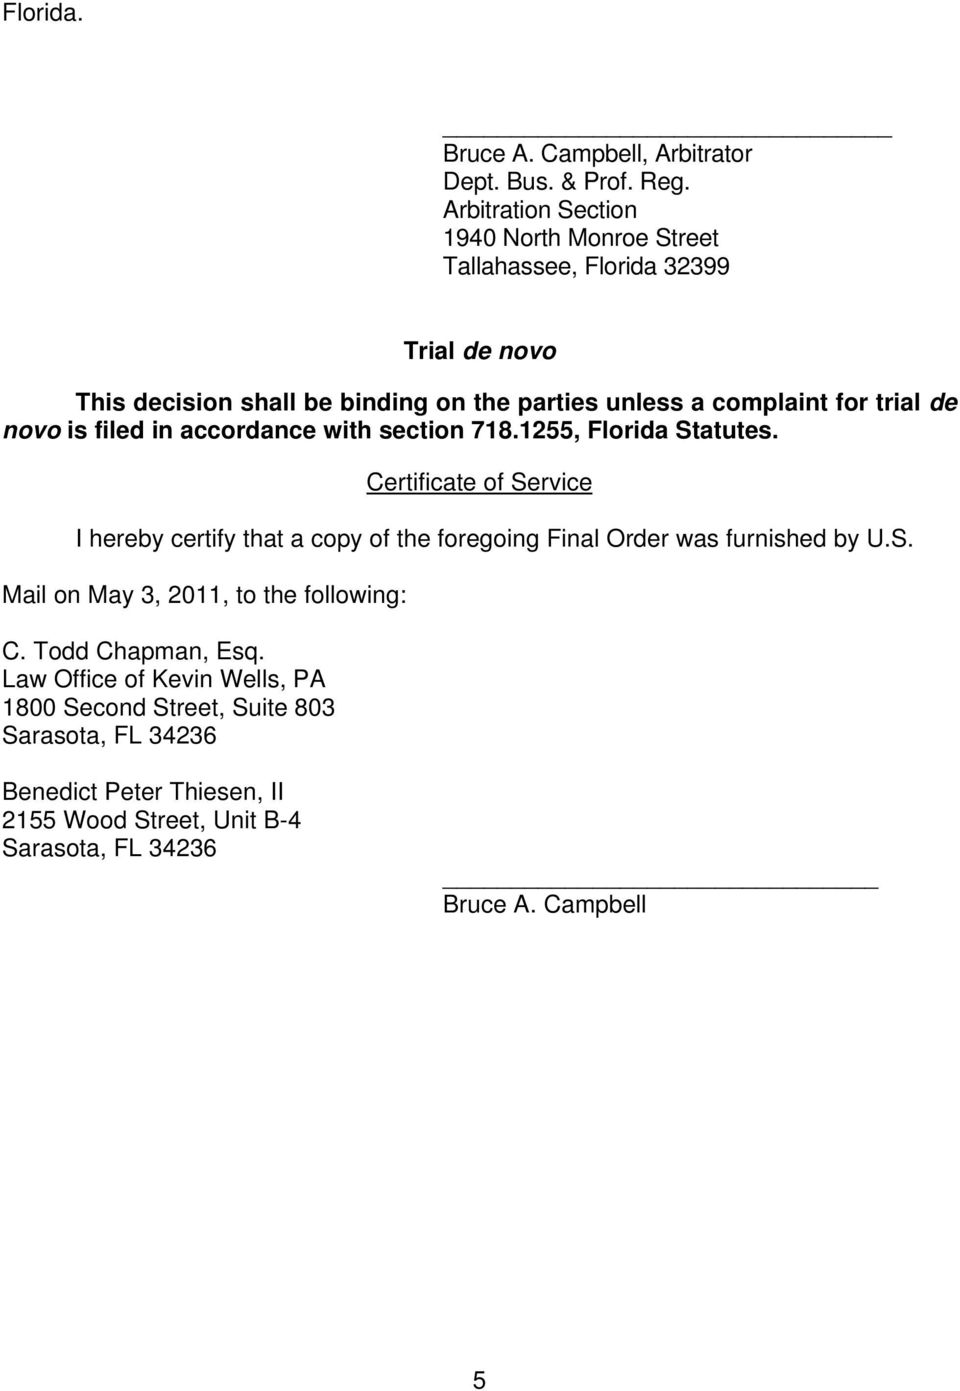 trial de novo is filed in accordance with section 718.1255, Florida Statutes.